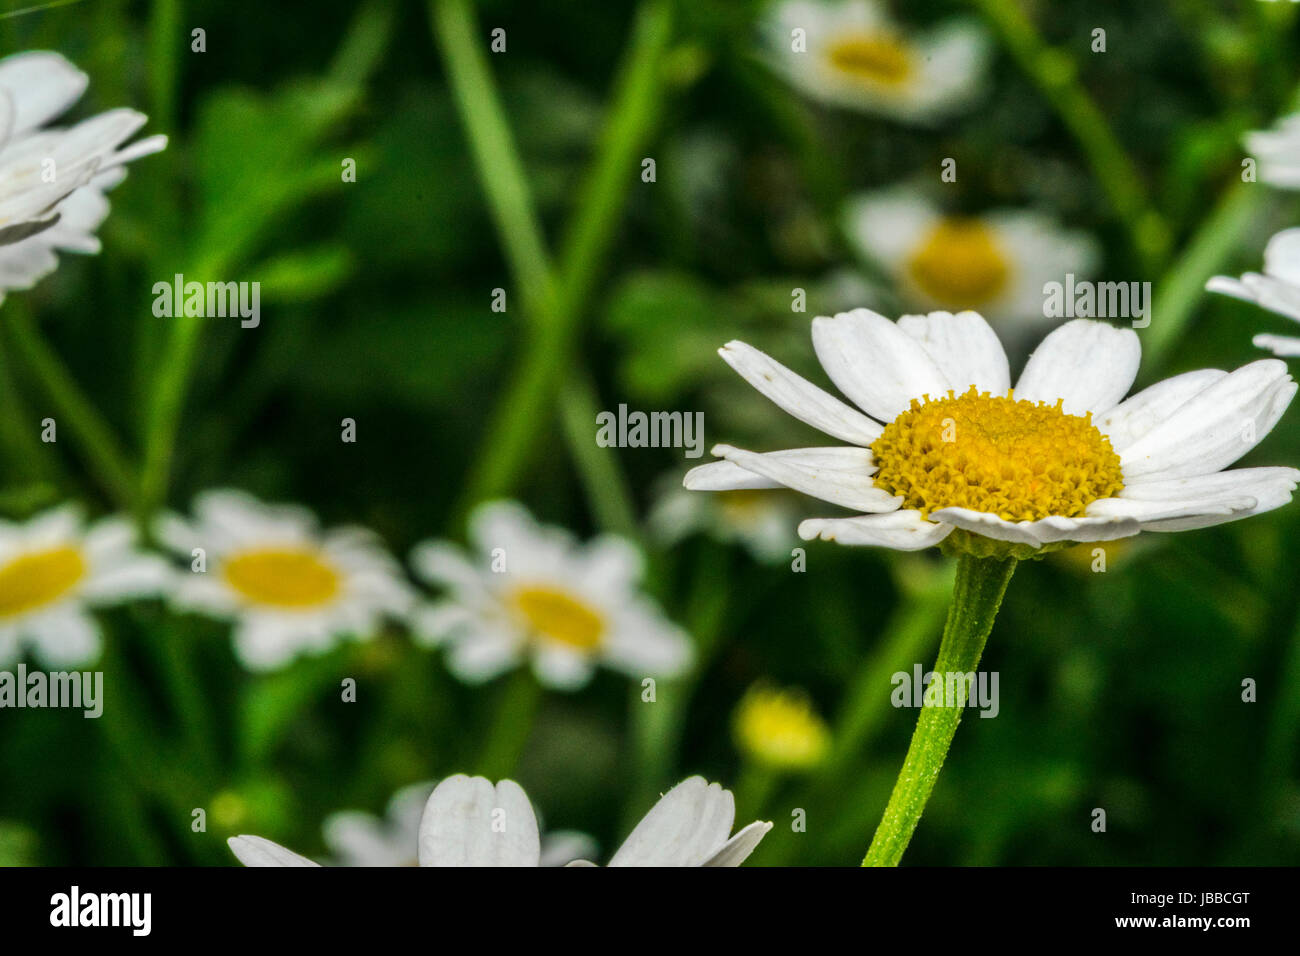 Little daisy stock photos little daisy stock images alamy little daisy flowers in a garden stock image izmirmasajfo